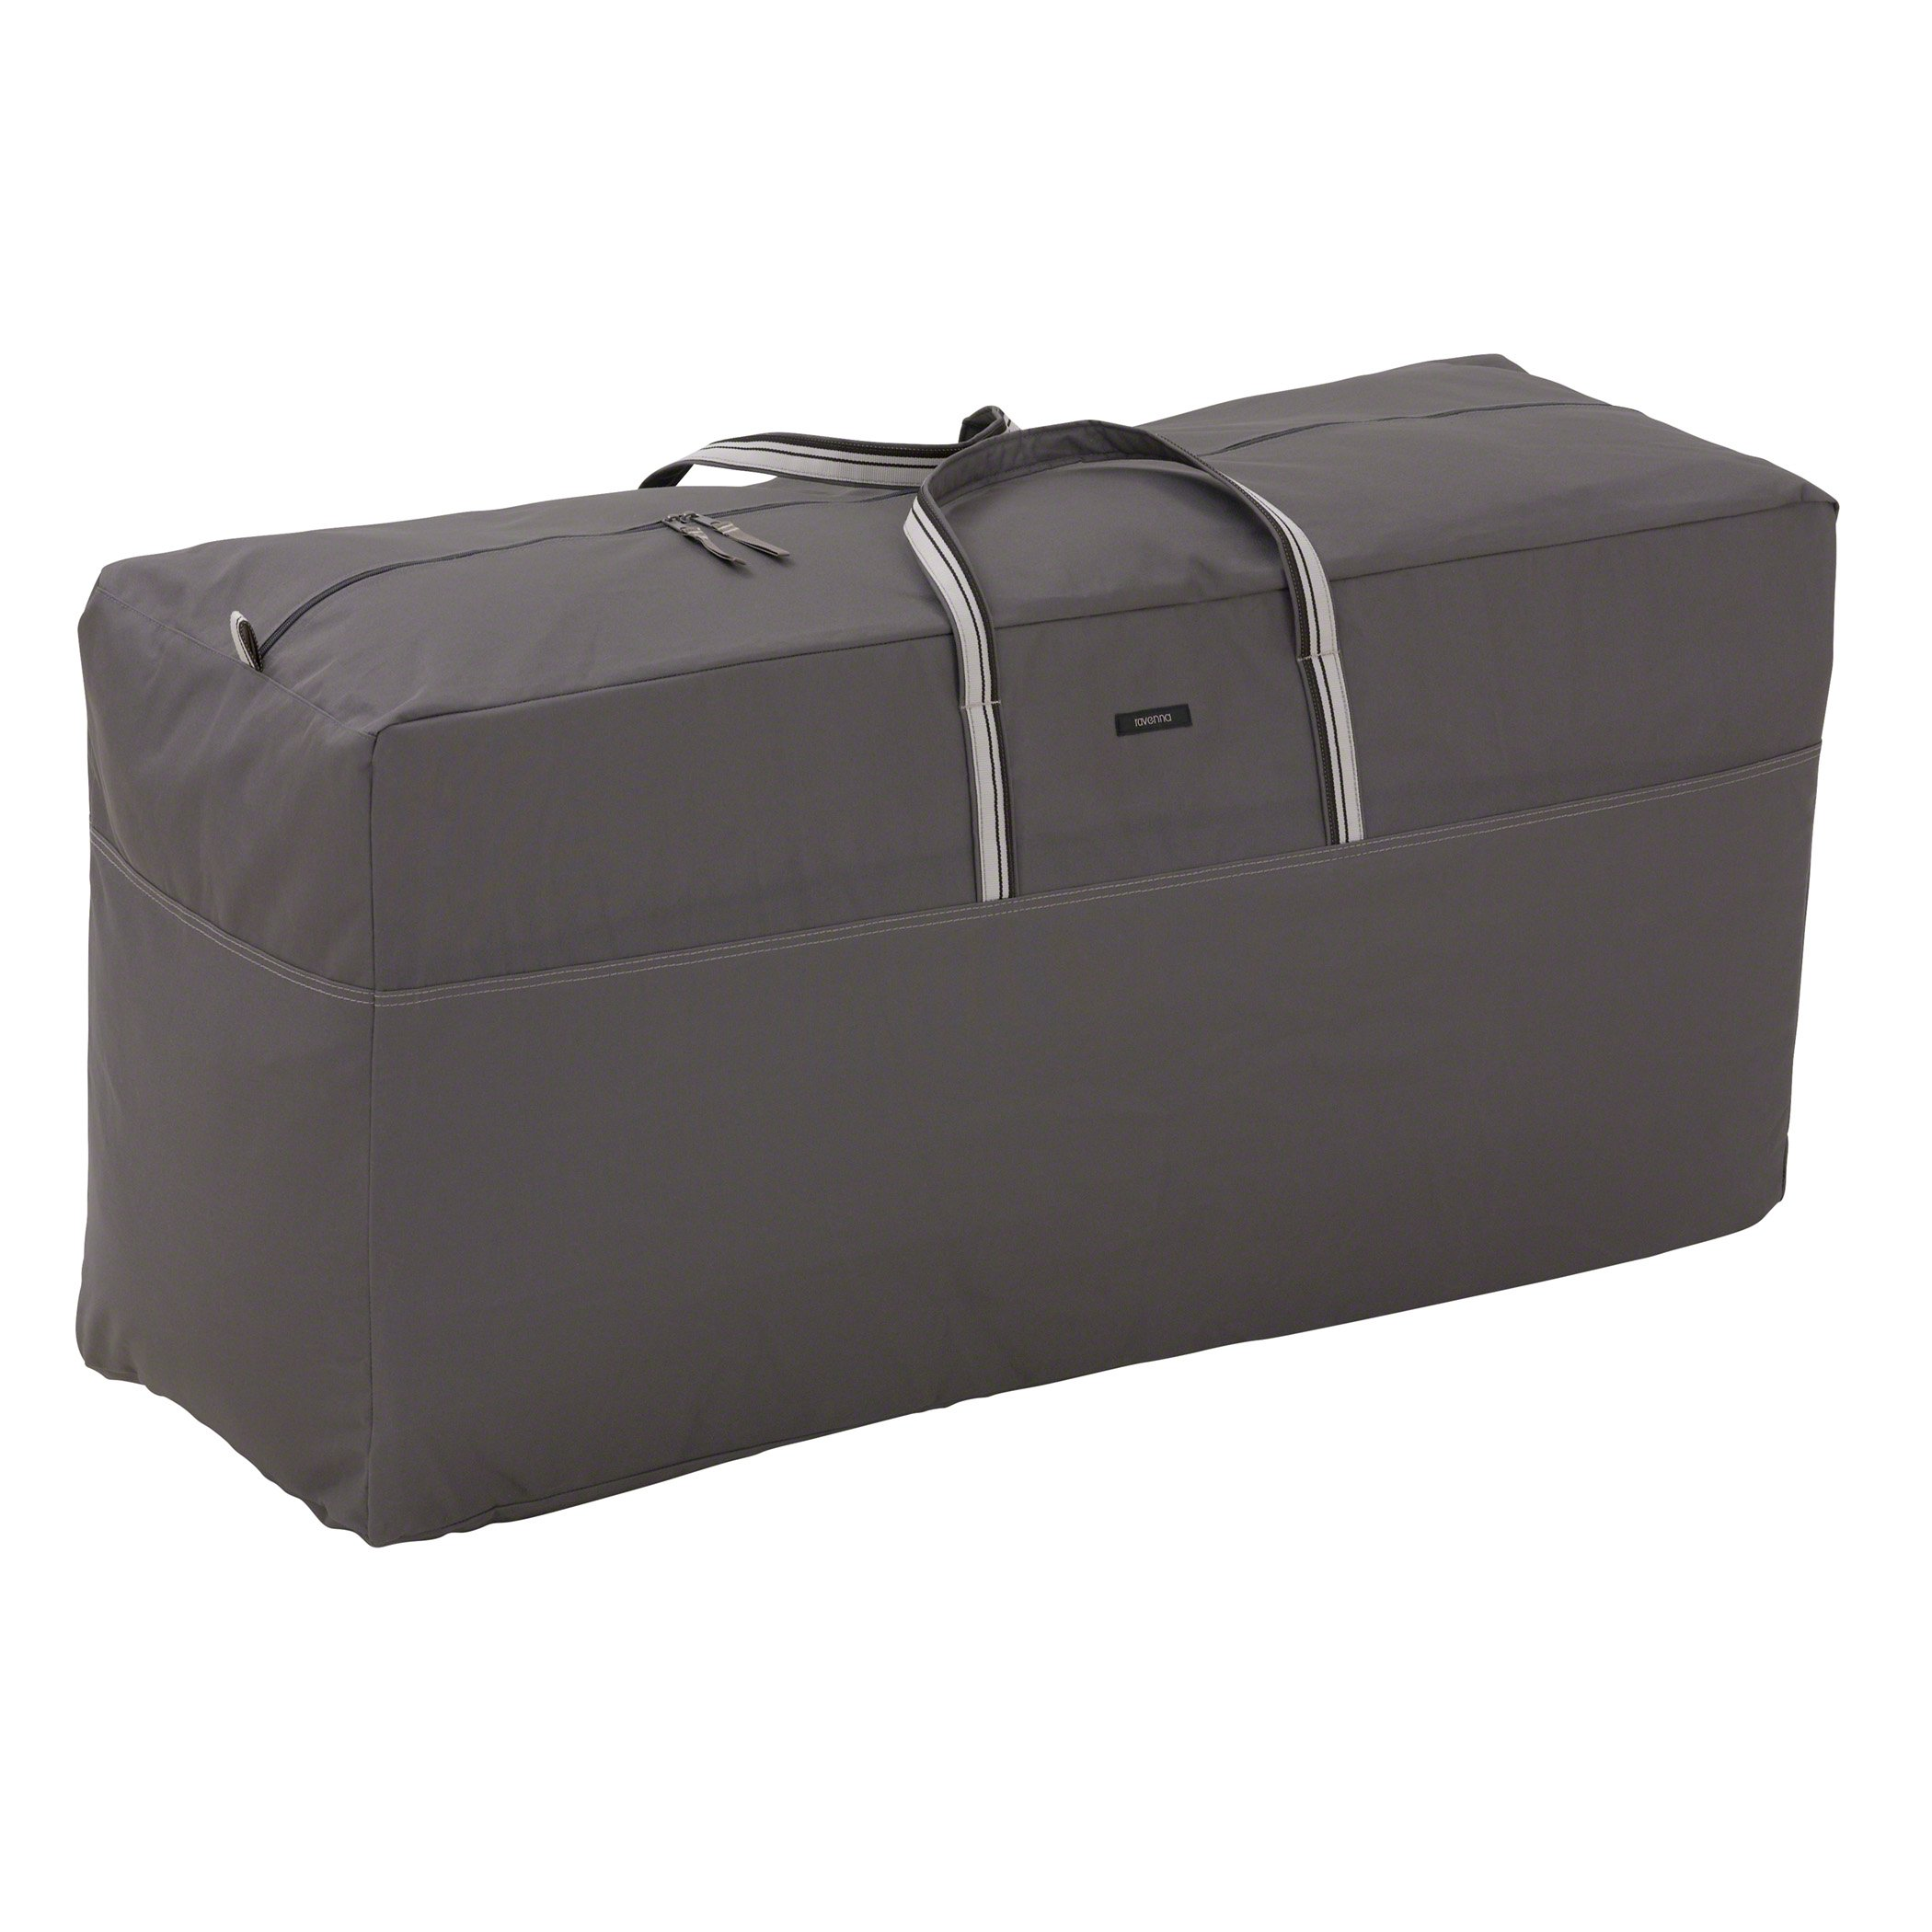 Classic Accessories Ravenna Oversized Cushion & Cover Storage Bag - Premium Outdoor Cover with Durable and Water Resistant Fabric (55-809-065101-EC)